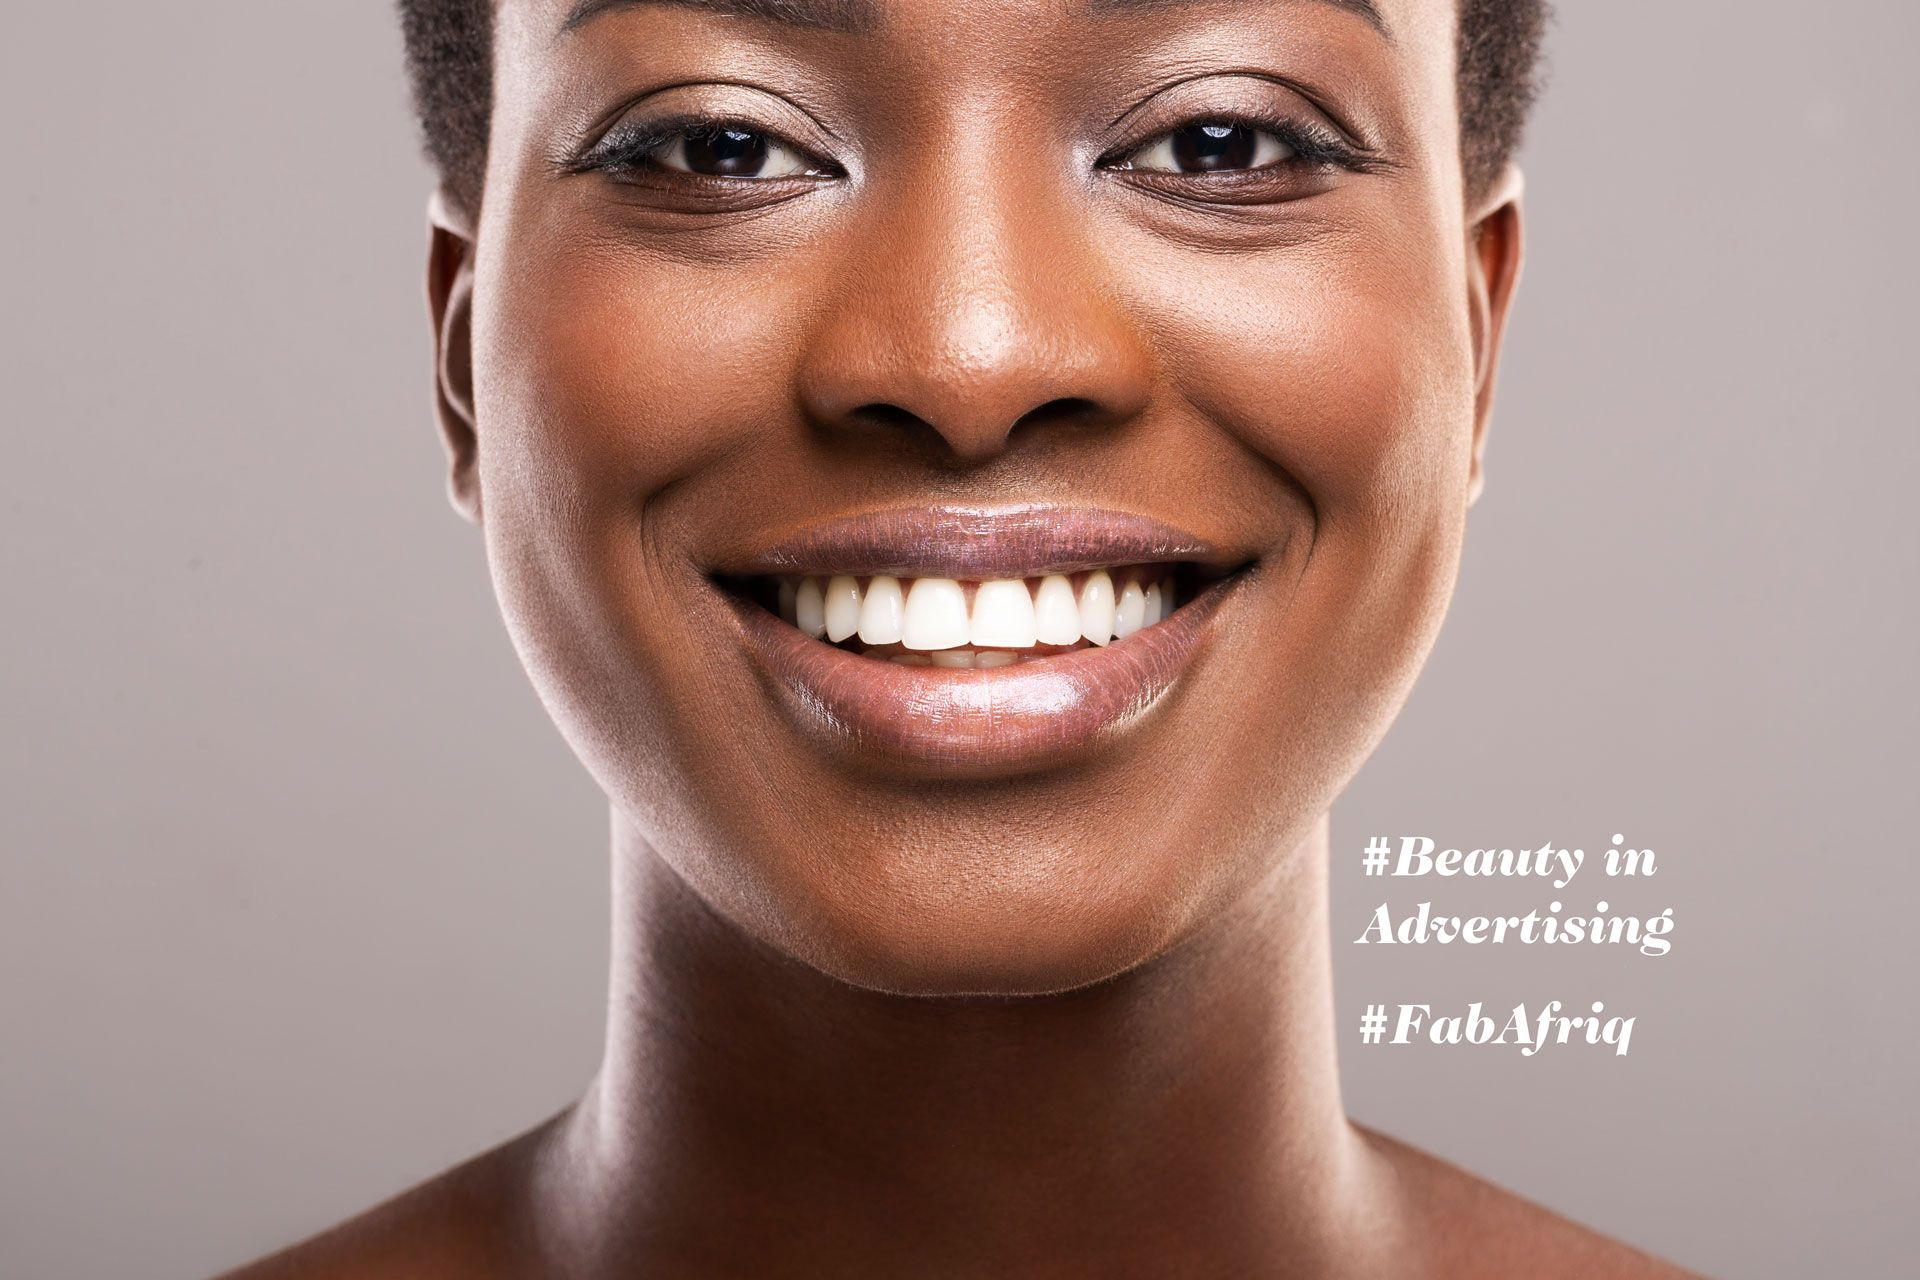 black-woman-with-perfect-skin-and-white-teeth